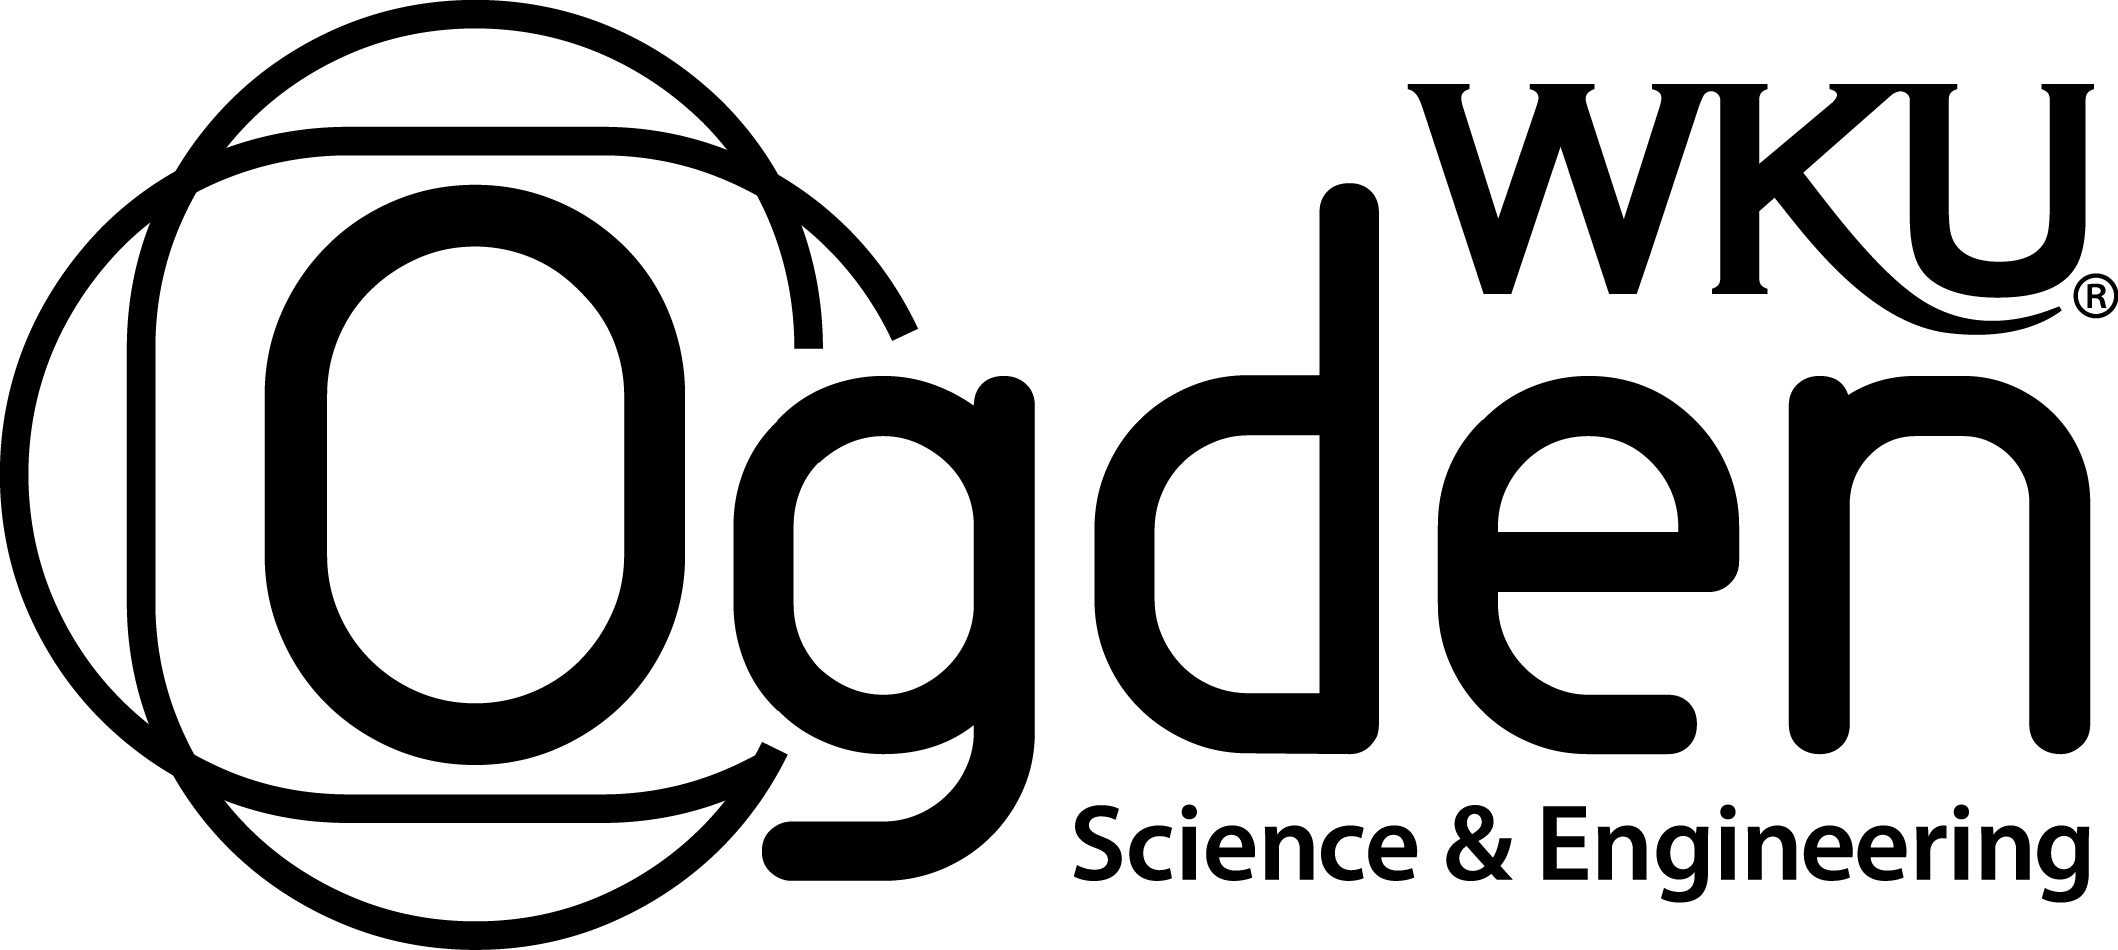 ogden logo black version